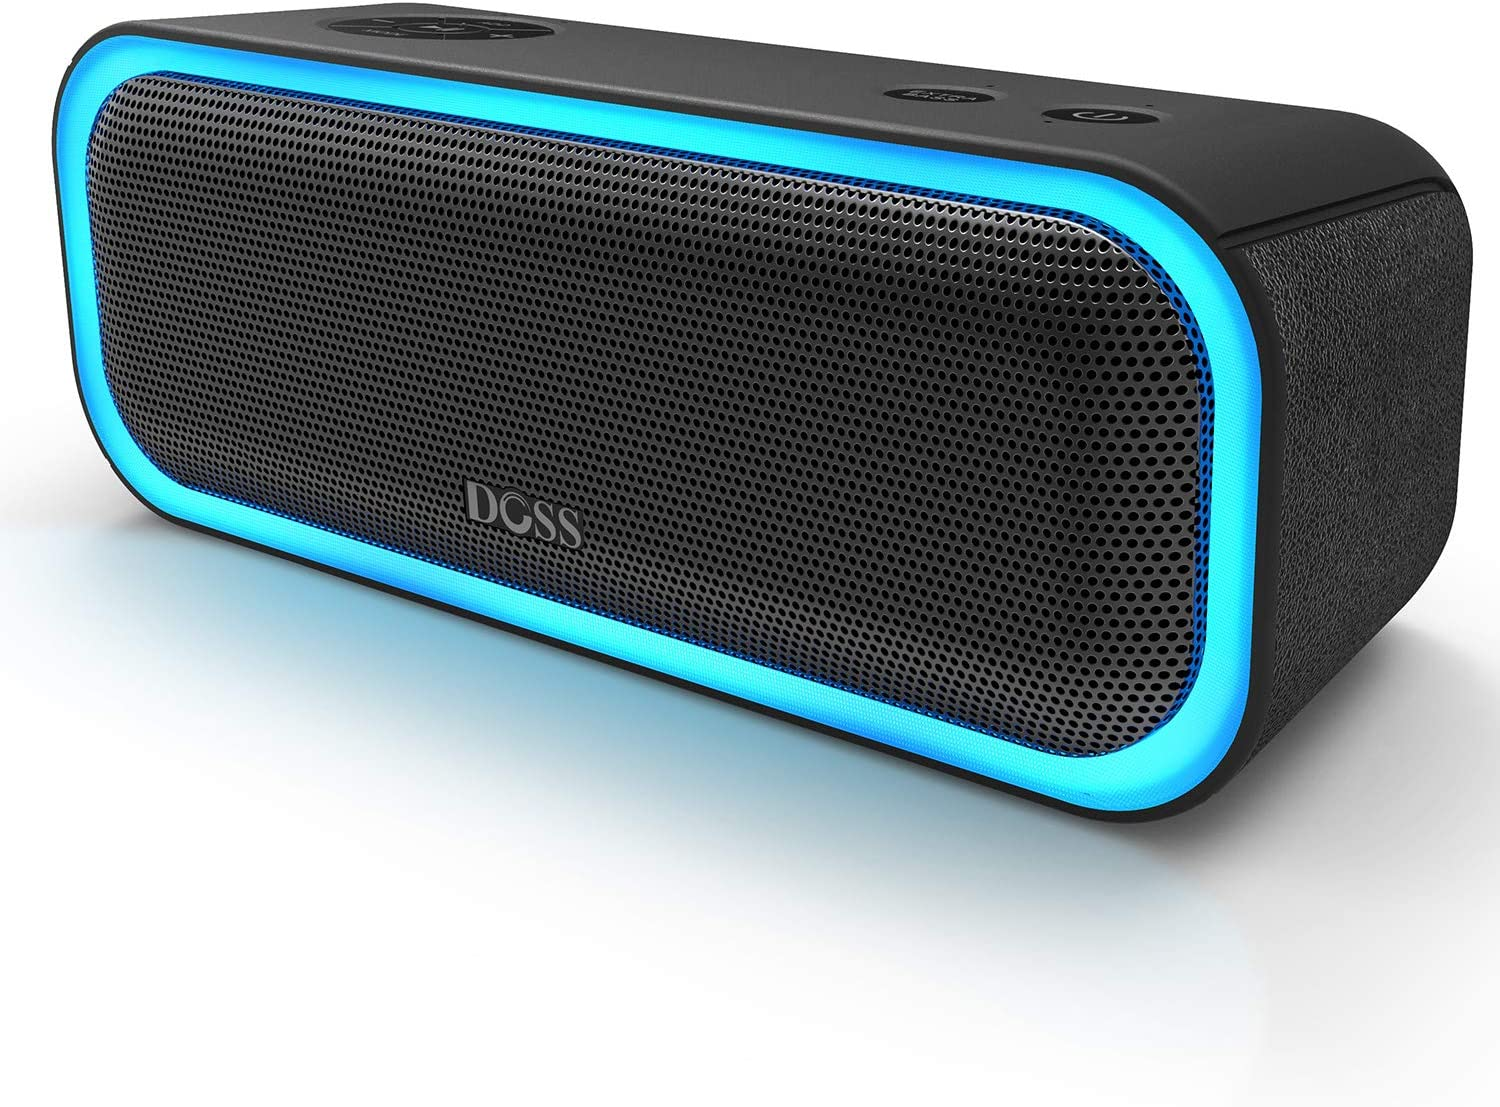 Bluetooth Speakers, DOSS SoundBox Pro Portable Wireless Bluetooth Speaker with 20W Stereo Sound